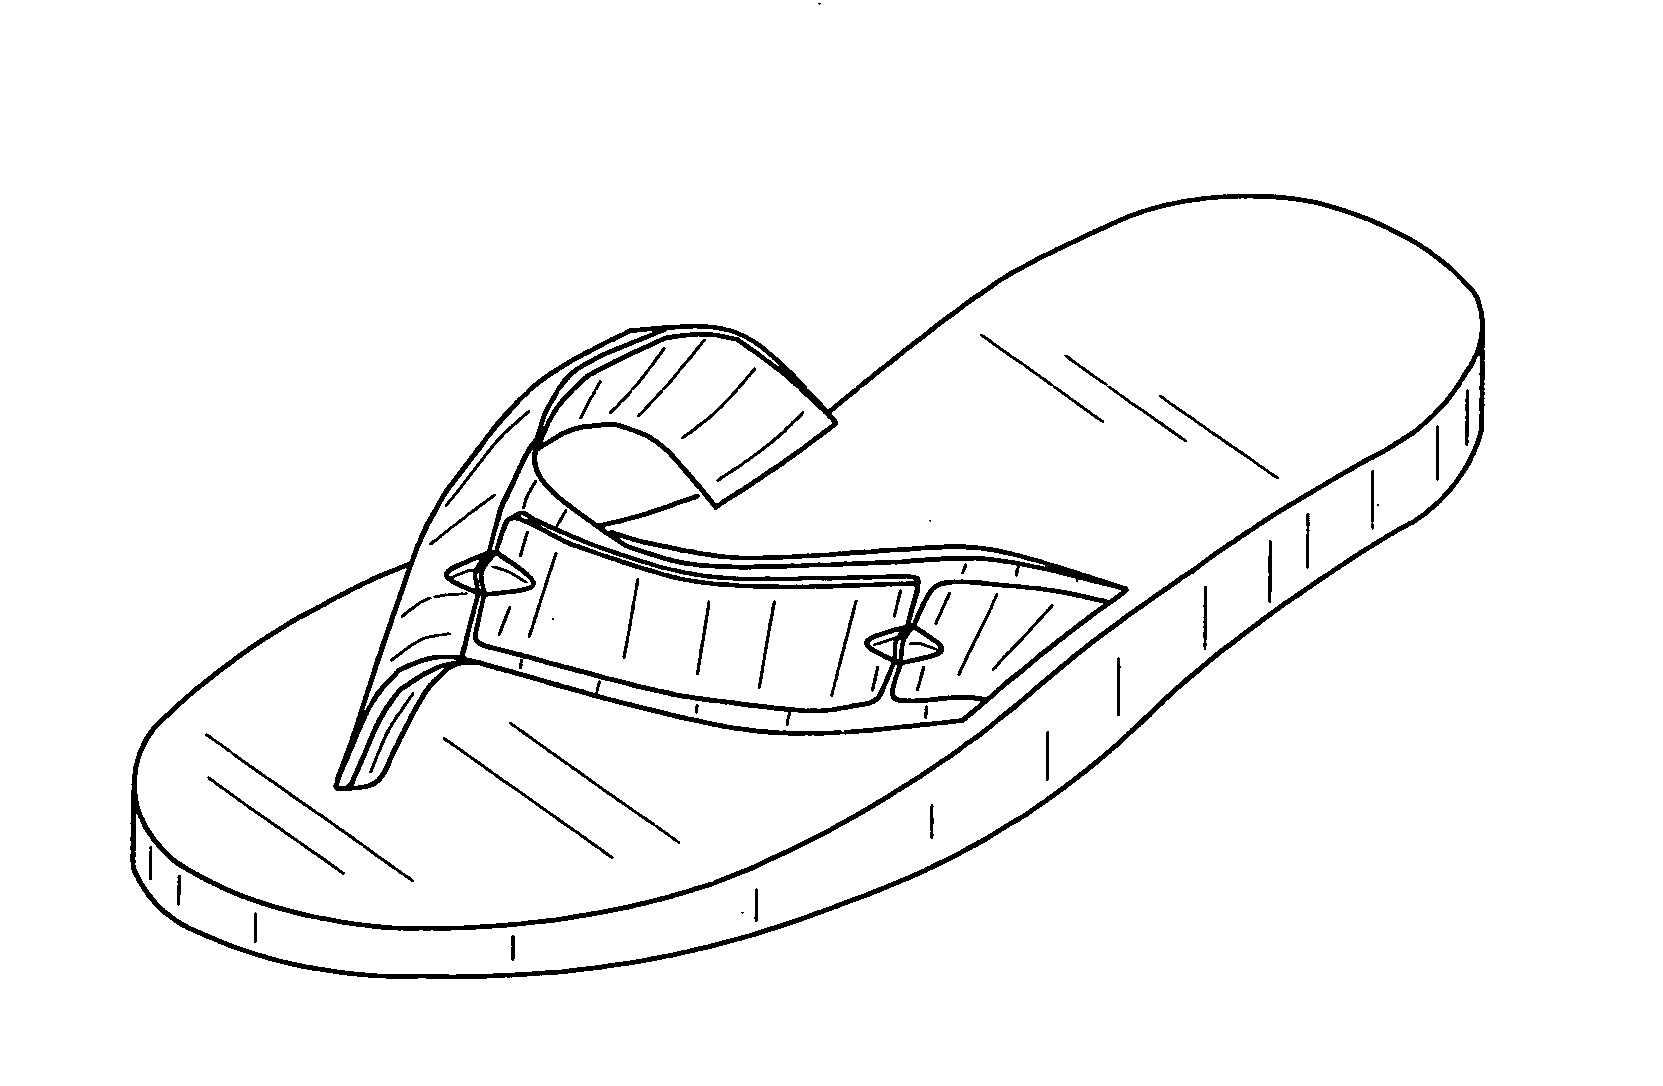 graphic about Flip Flop Printable called Sandals Coloring Webpage at  No cost for unique